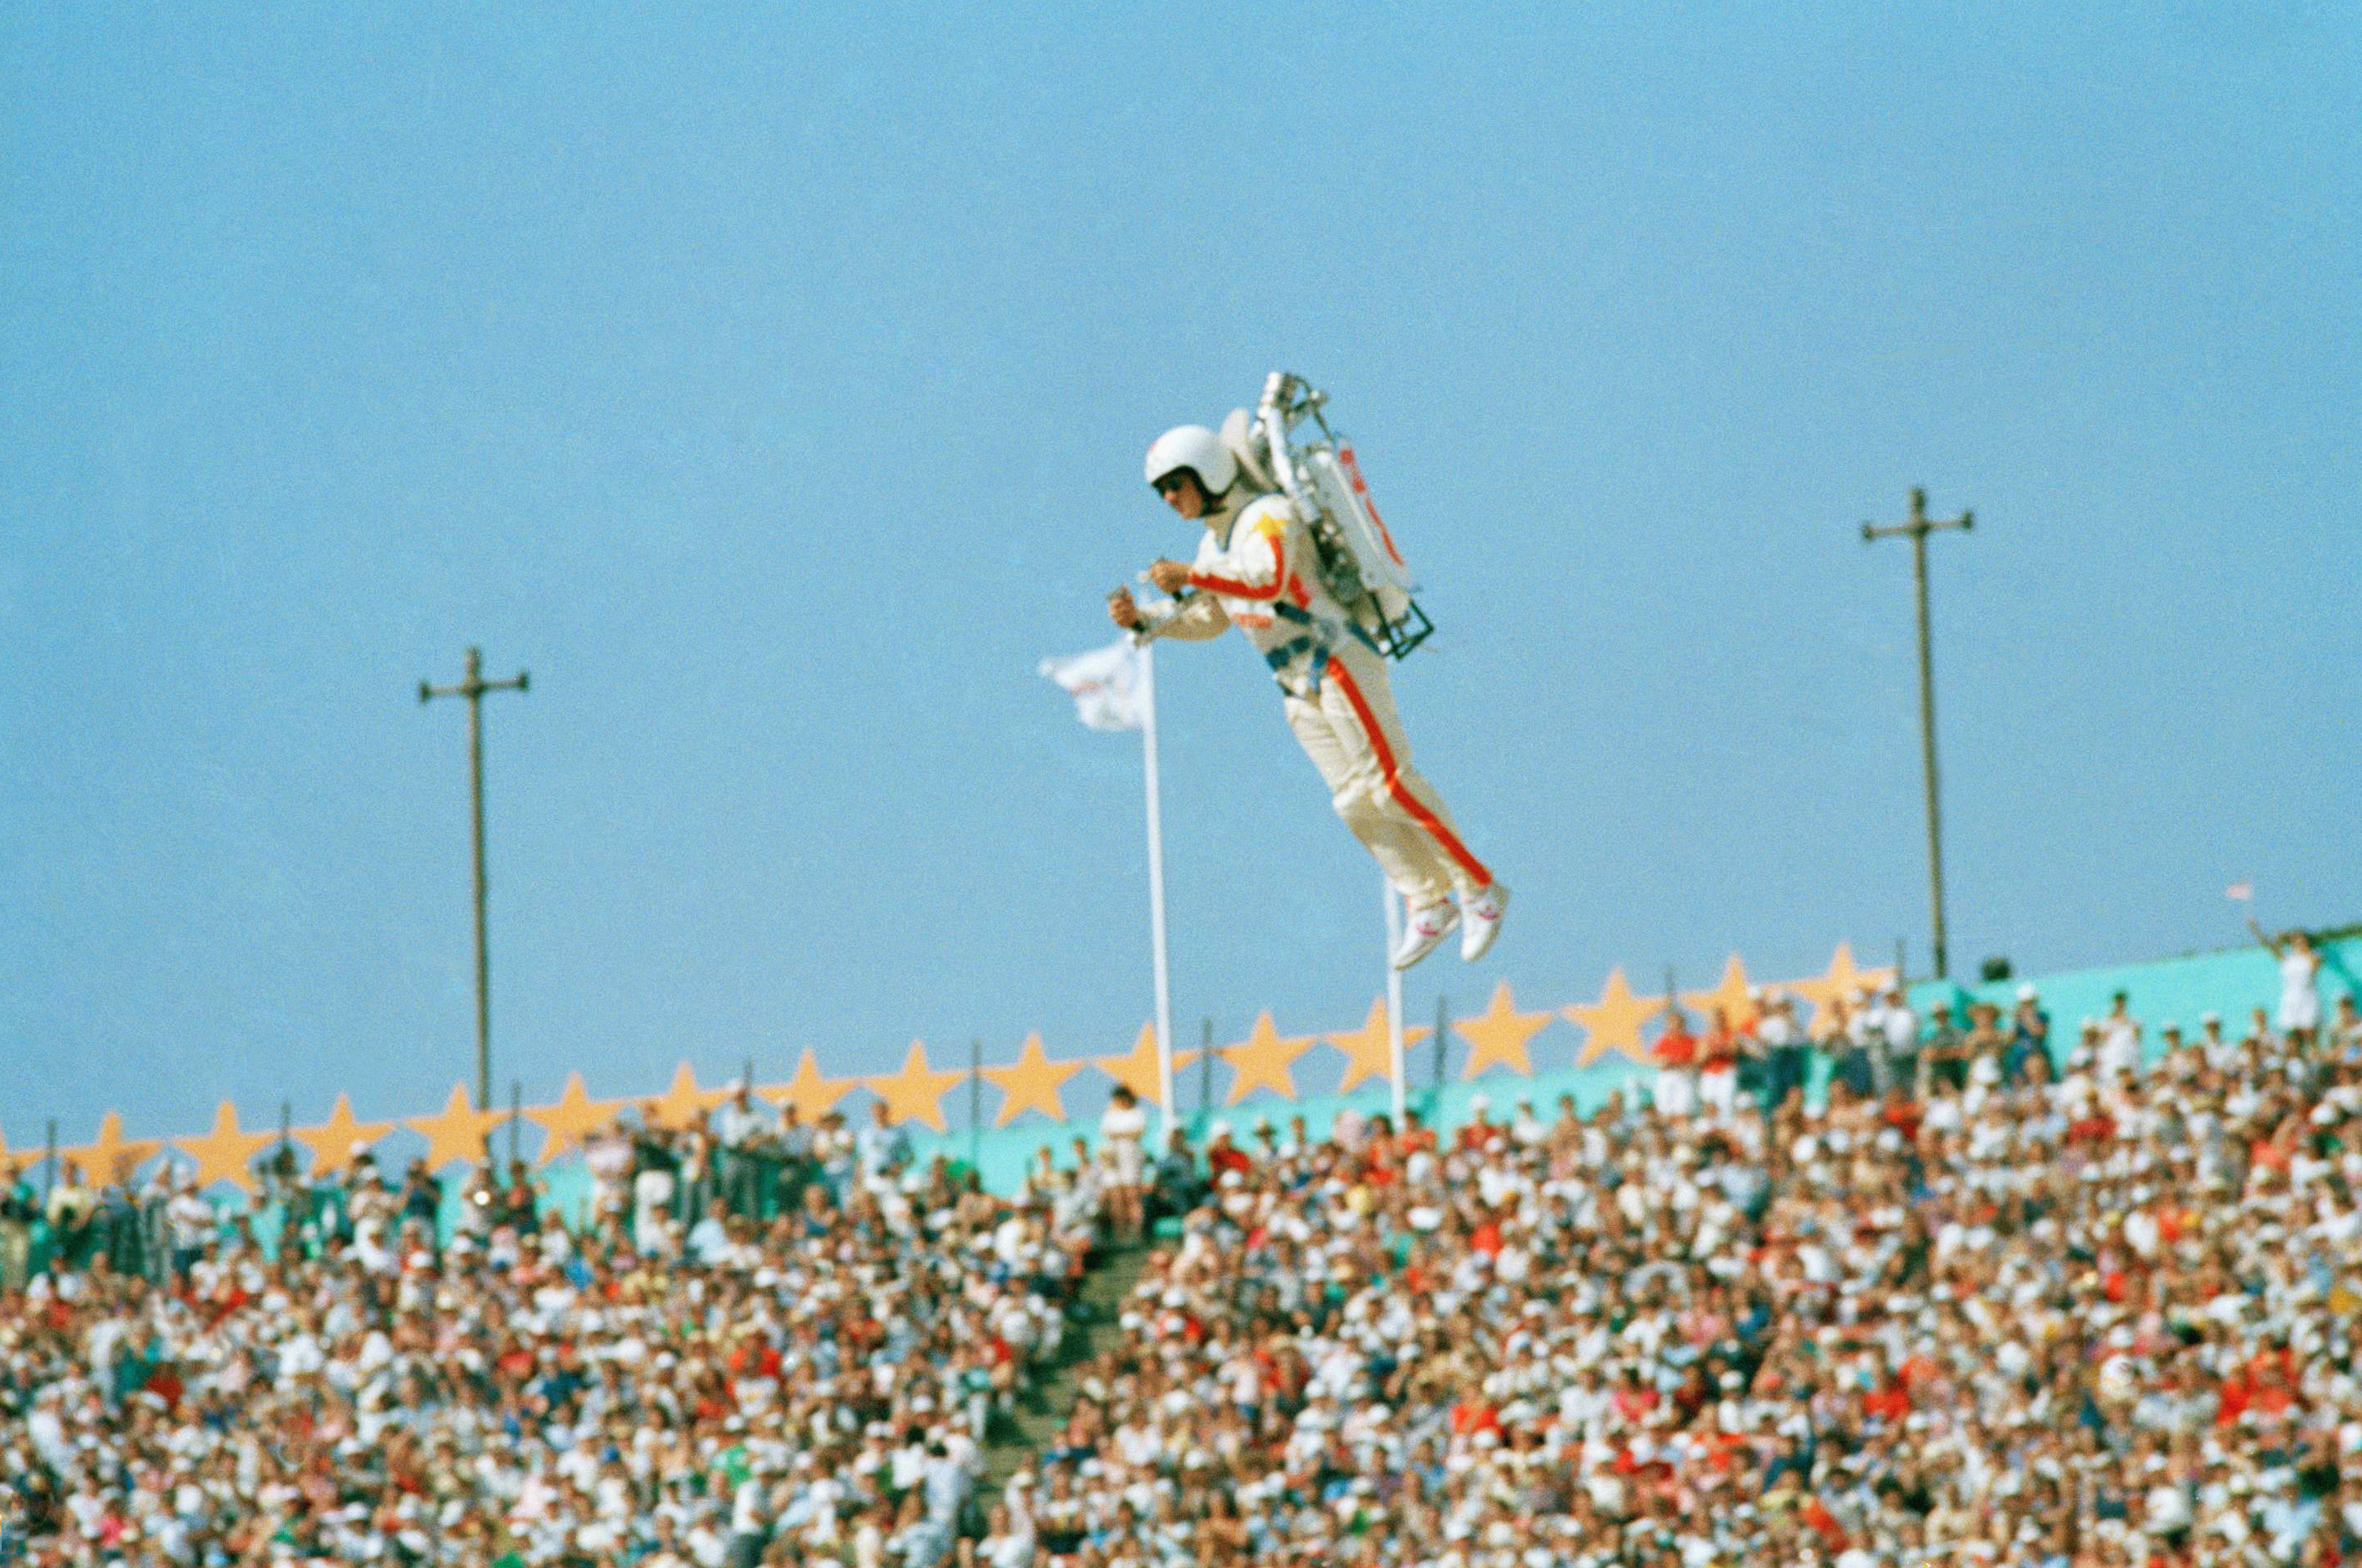 "<div class=""meta image-caption""><div class=""origin-logo origin-image ap""><span>AP</span></div><span class=""caption-text"">In this July 28, 1984 file photo Bill Suiter ""Rocket Man"" soars with the help of a jet pack during the welcoming of nations at the Opening ceremonies in the L.A. Memorial Coliseum. (AP Photo/Rusty Kennedy, file)</span></div>"